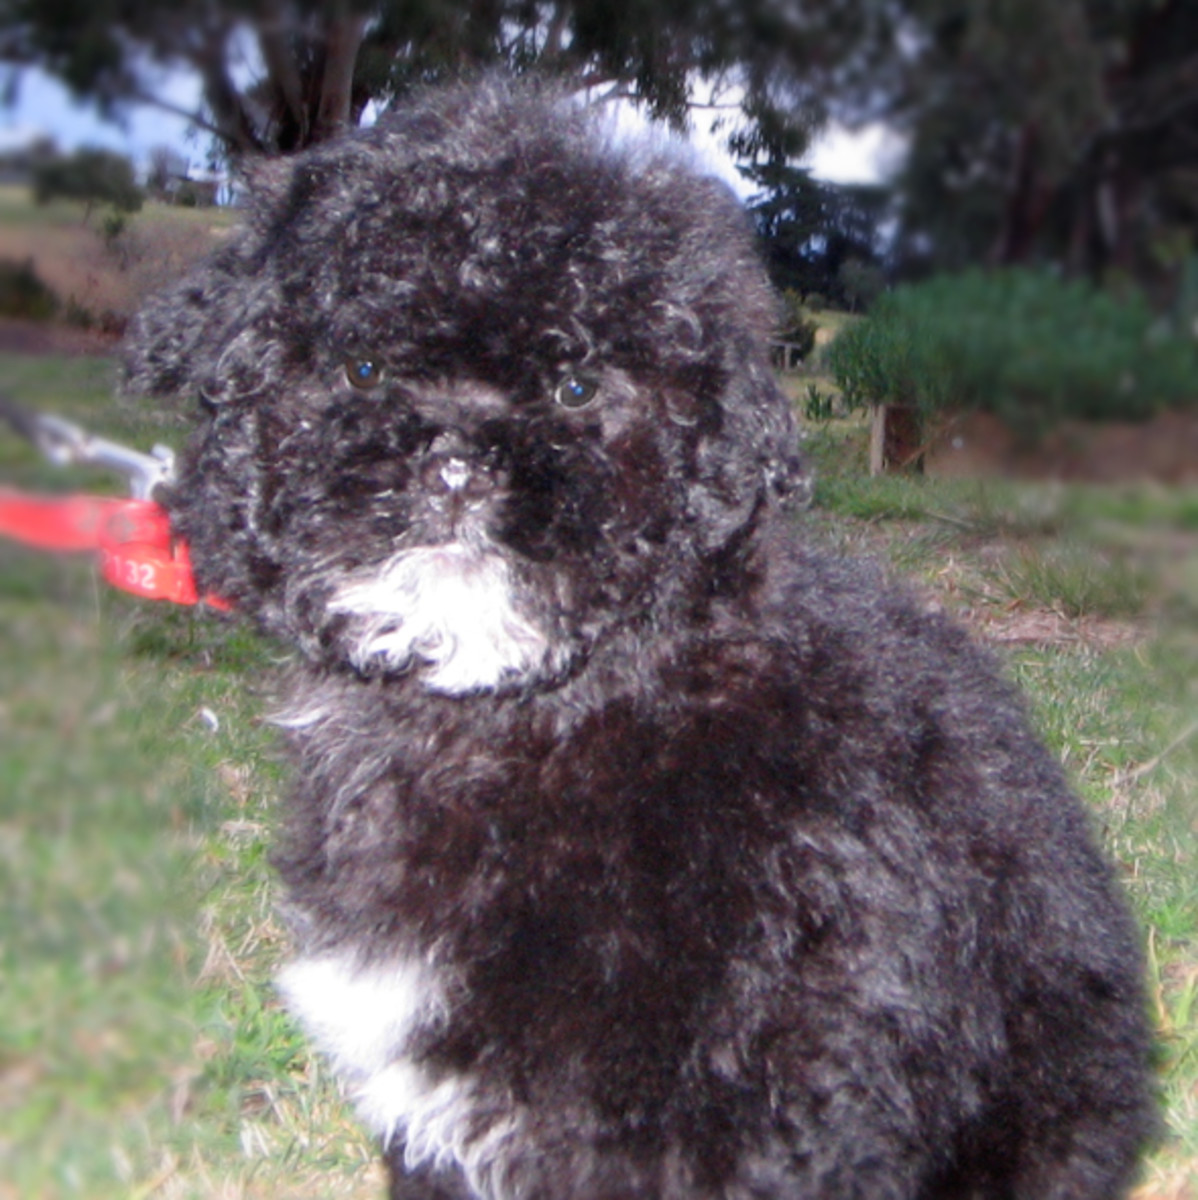 Look at me I'm Oliver and I'm a shihpoo. Now thats a cross shih-tzu, Toy poodle. Ain't I cute?